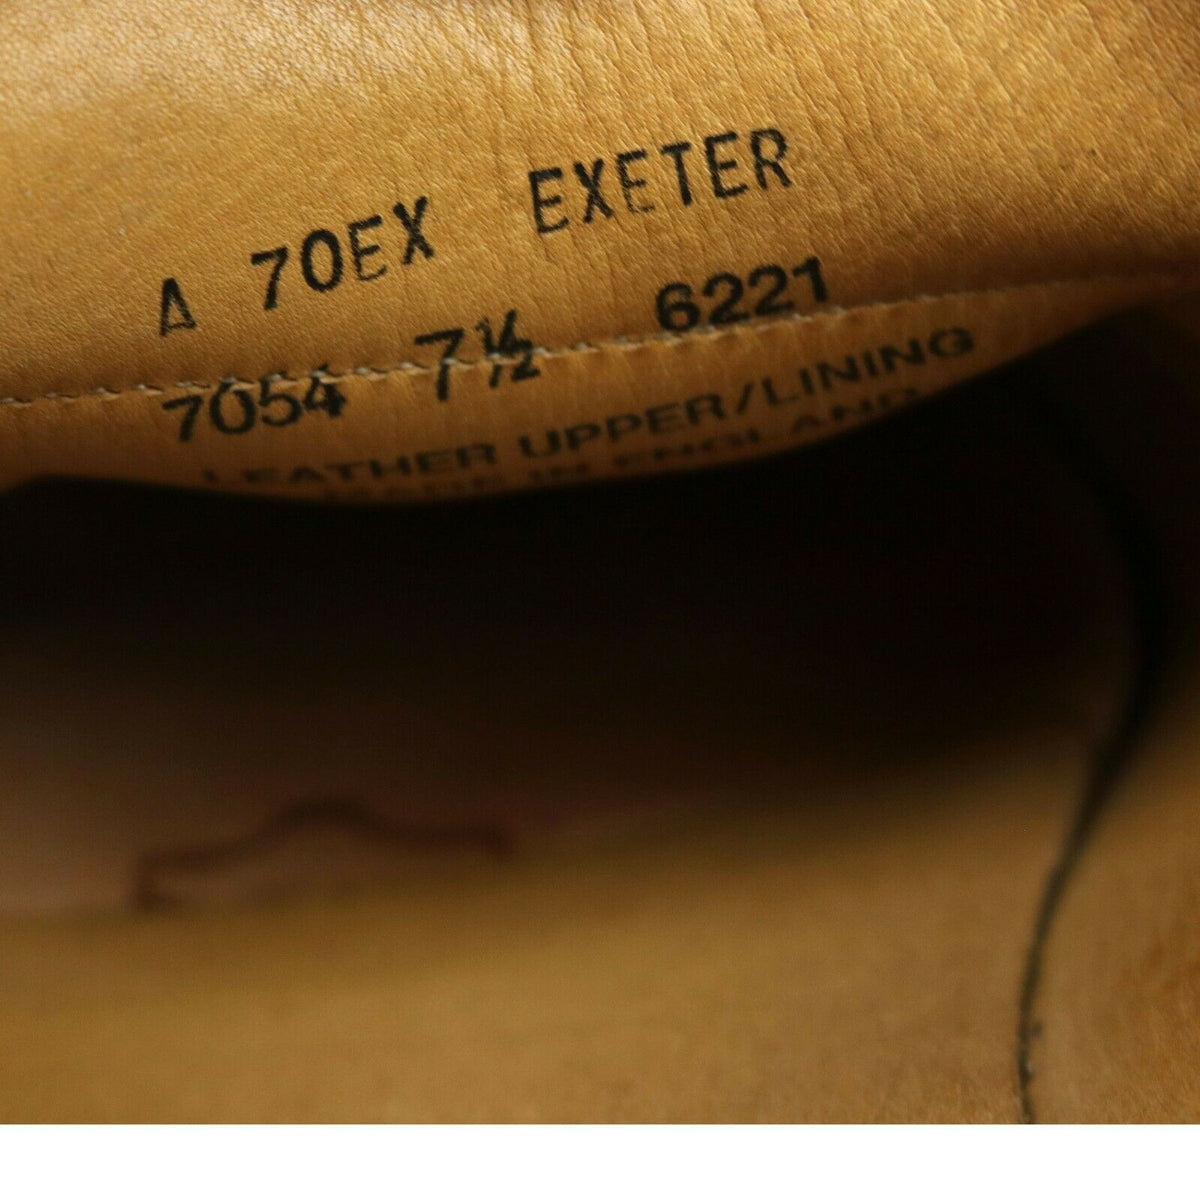 Alfred Sargent 'Exeter' Brown Suede Loafers UK 7.5 EX